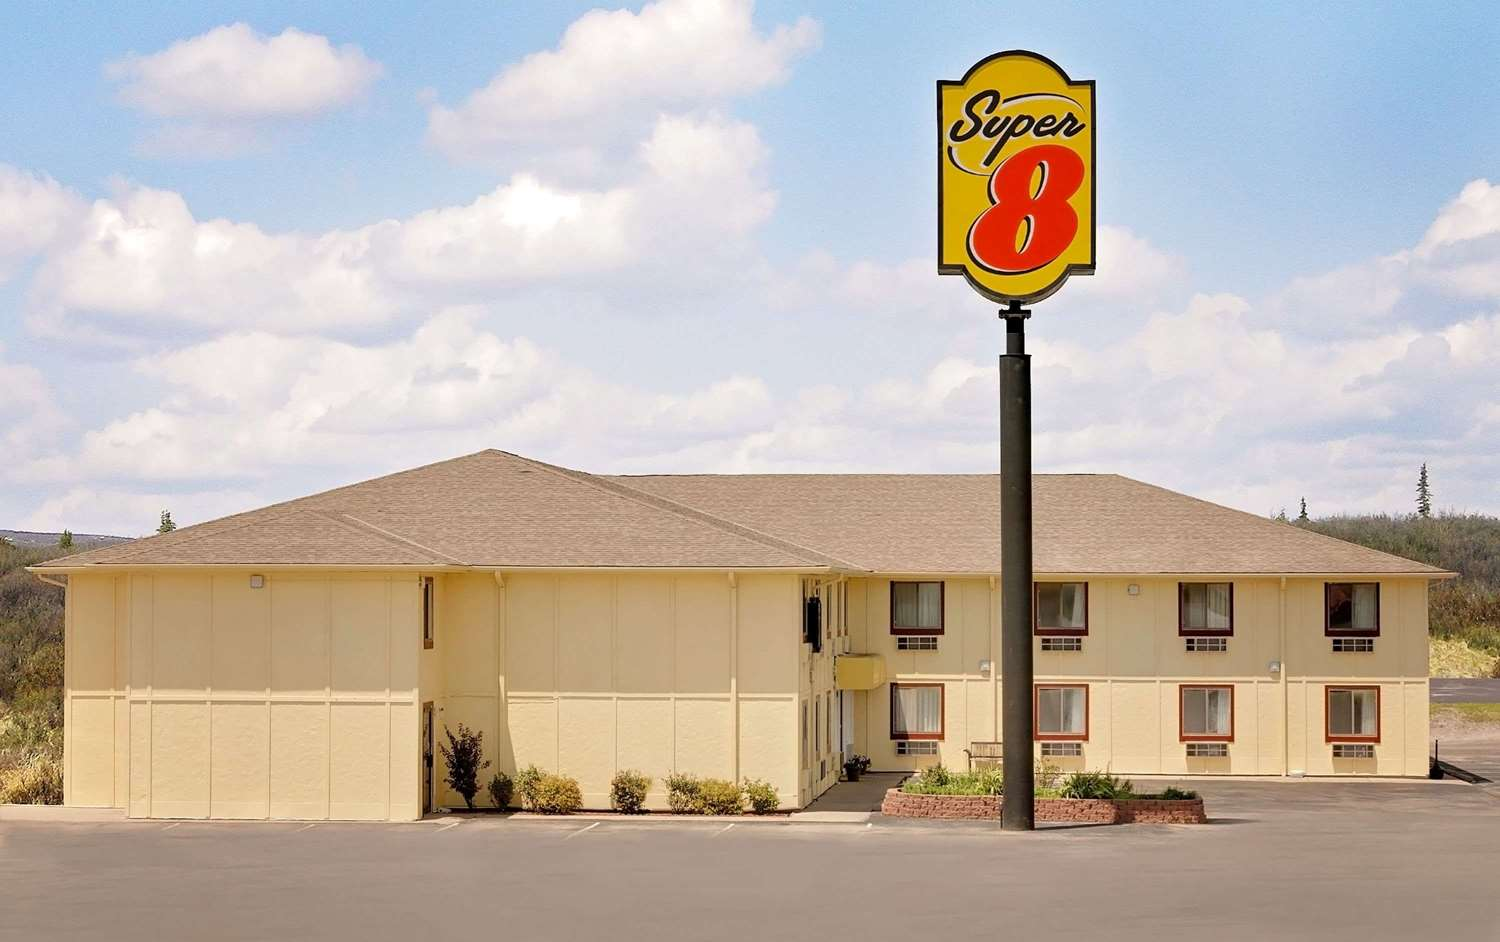 Super 8 Hotel Rock Port